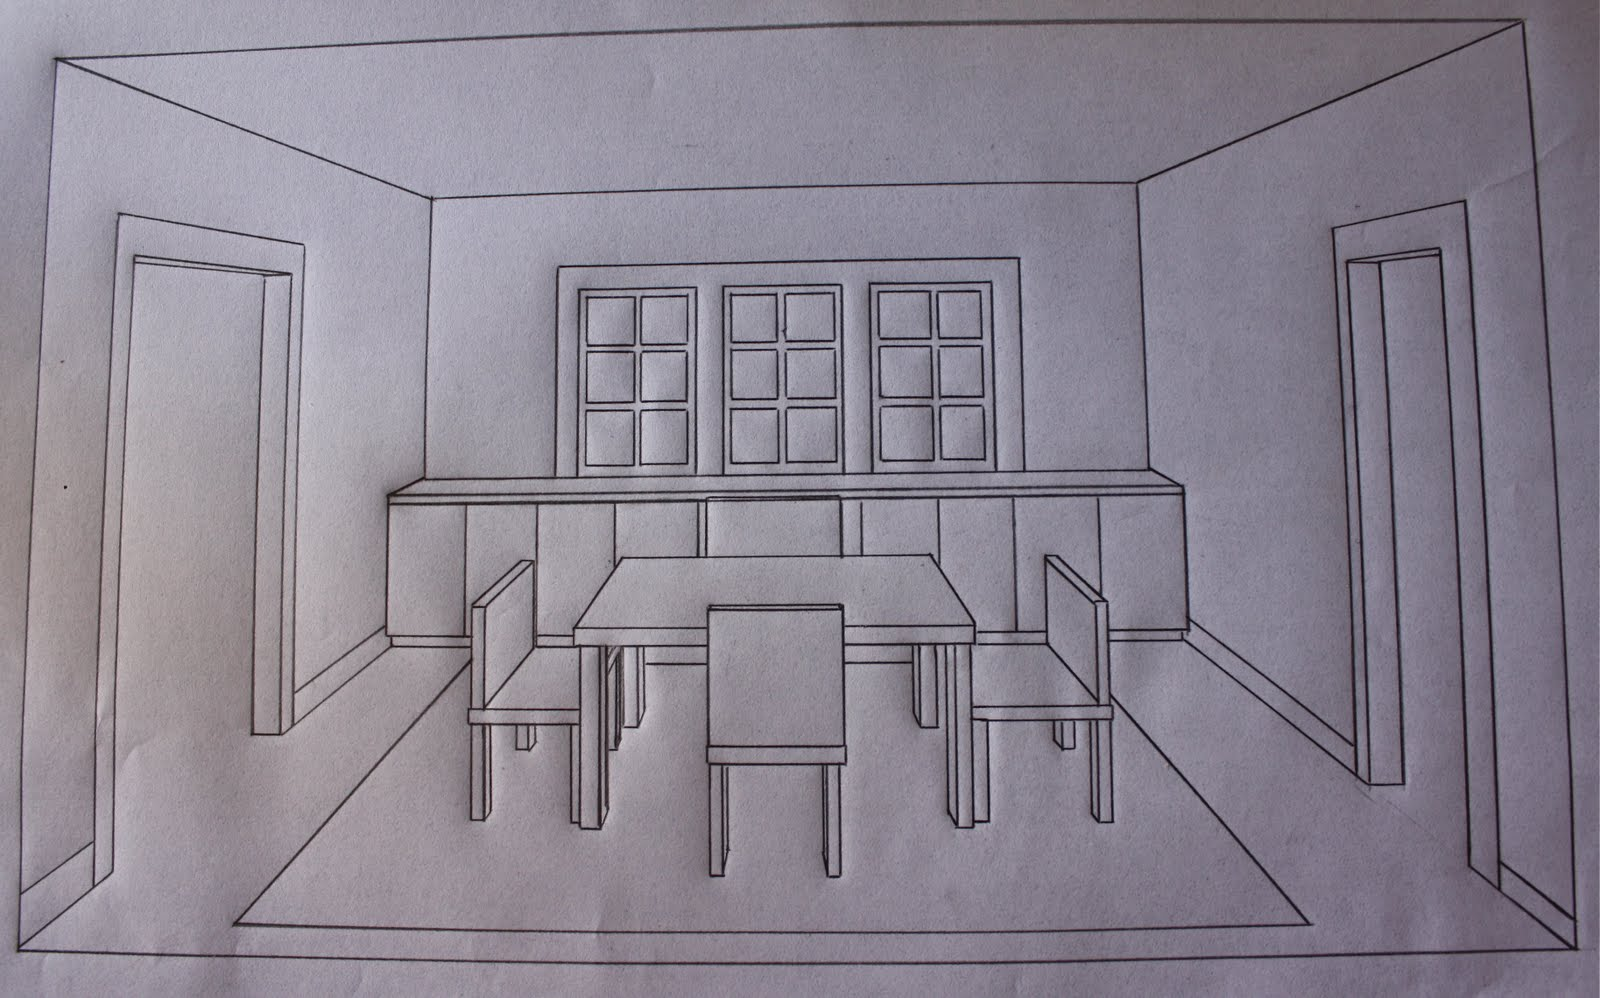 Dining room perspective drawing - Sketching And Perspective Drawing